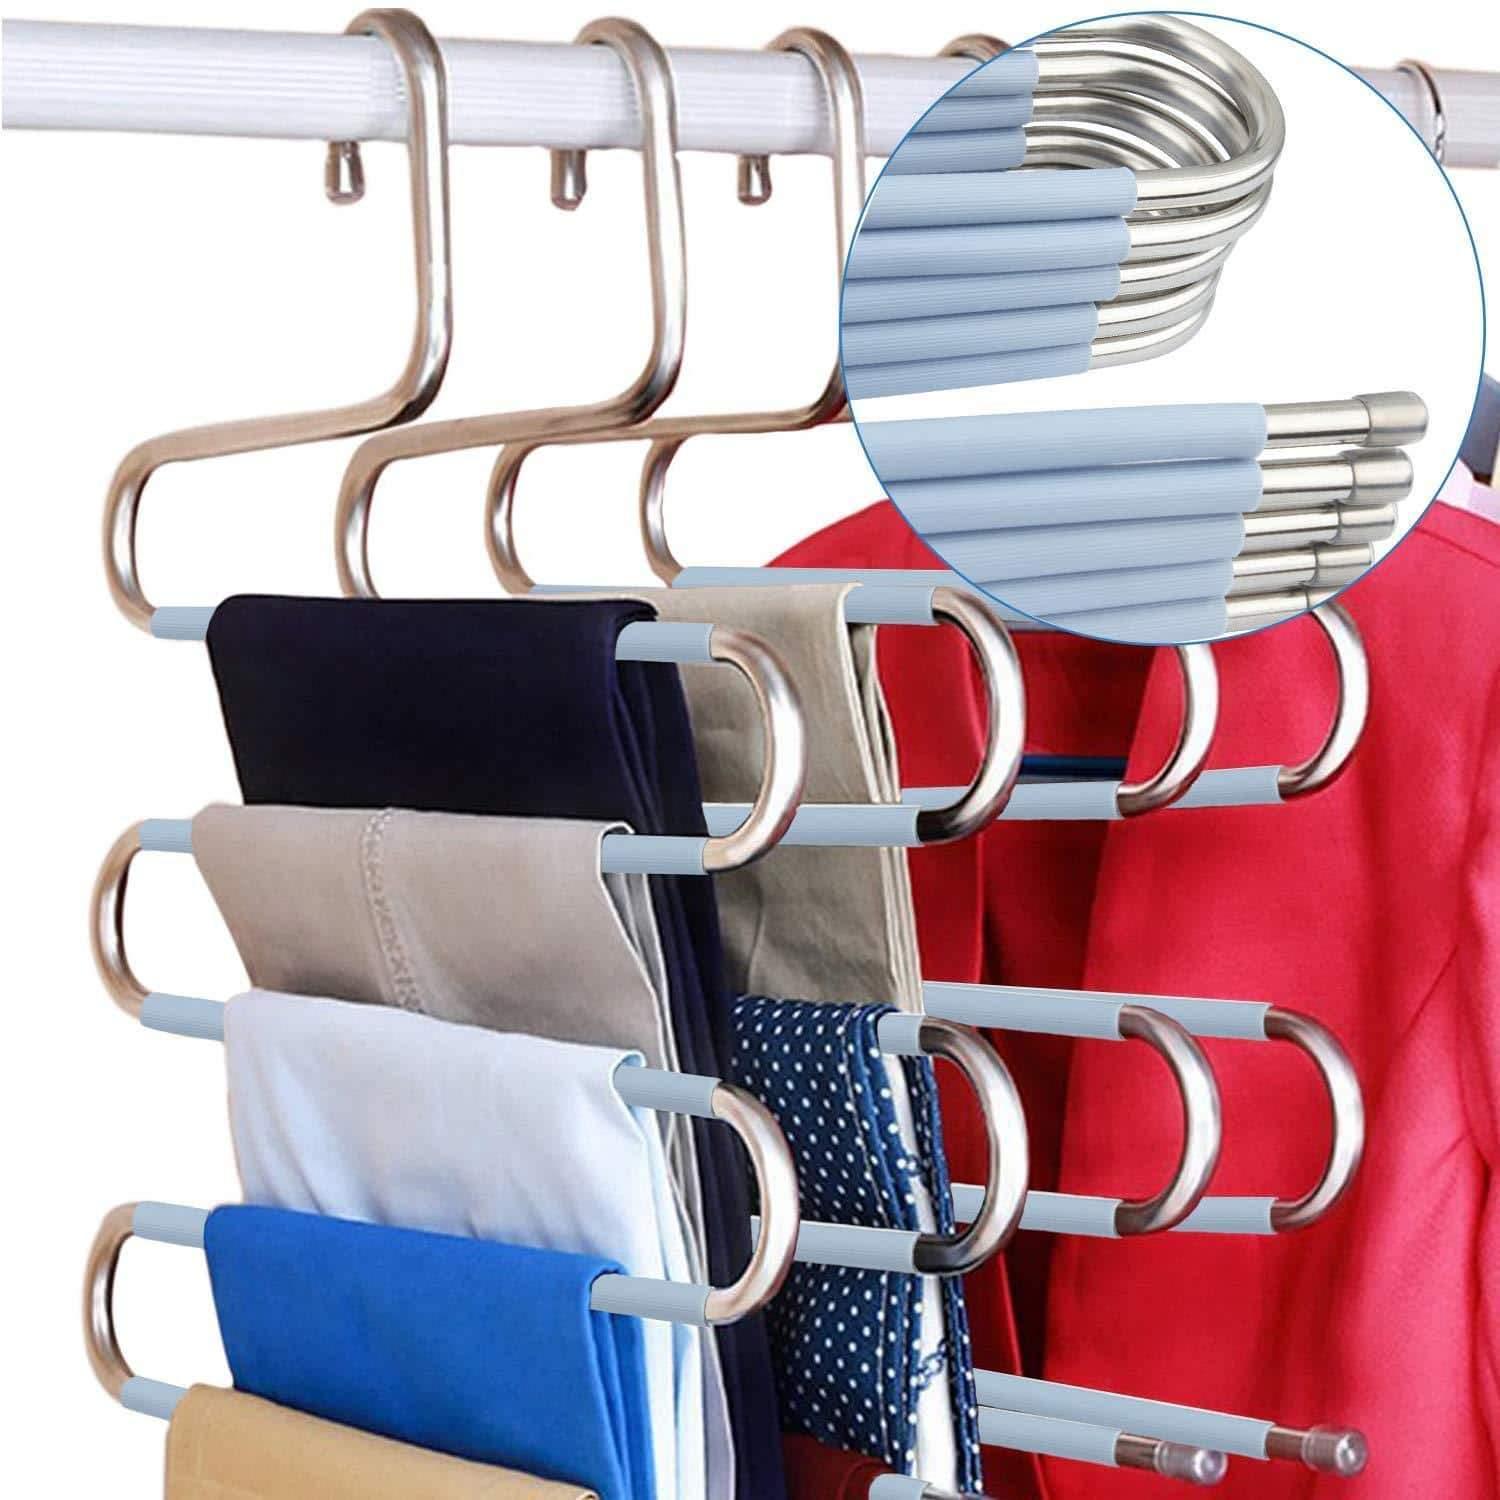 DOIOWN S-Type Stainless Steel Clothes Pants Hangers Closet Storage Organizer for Pants Jeans Scarf Hanging (14.17 x 14.96ins, Set of 3) (5-Pieces-Light Blue(Upgrade Style))